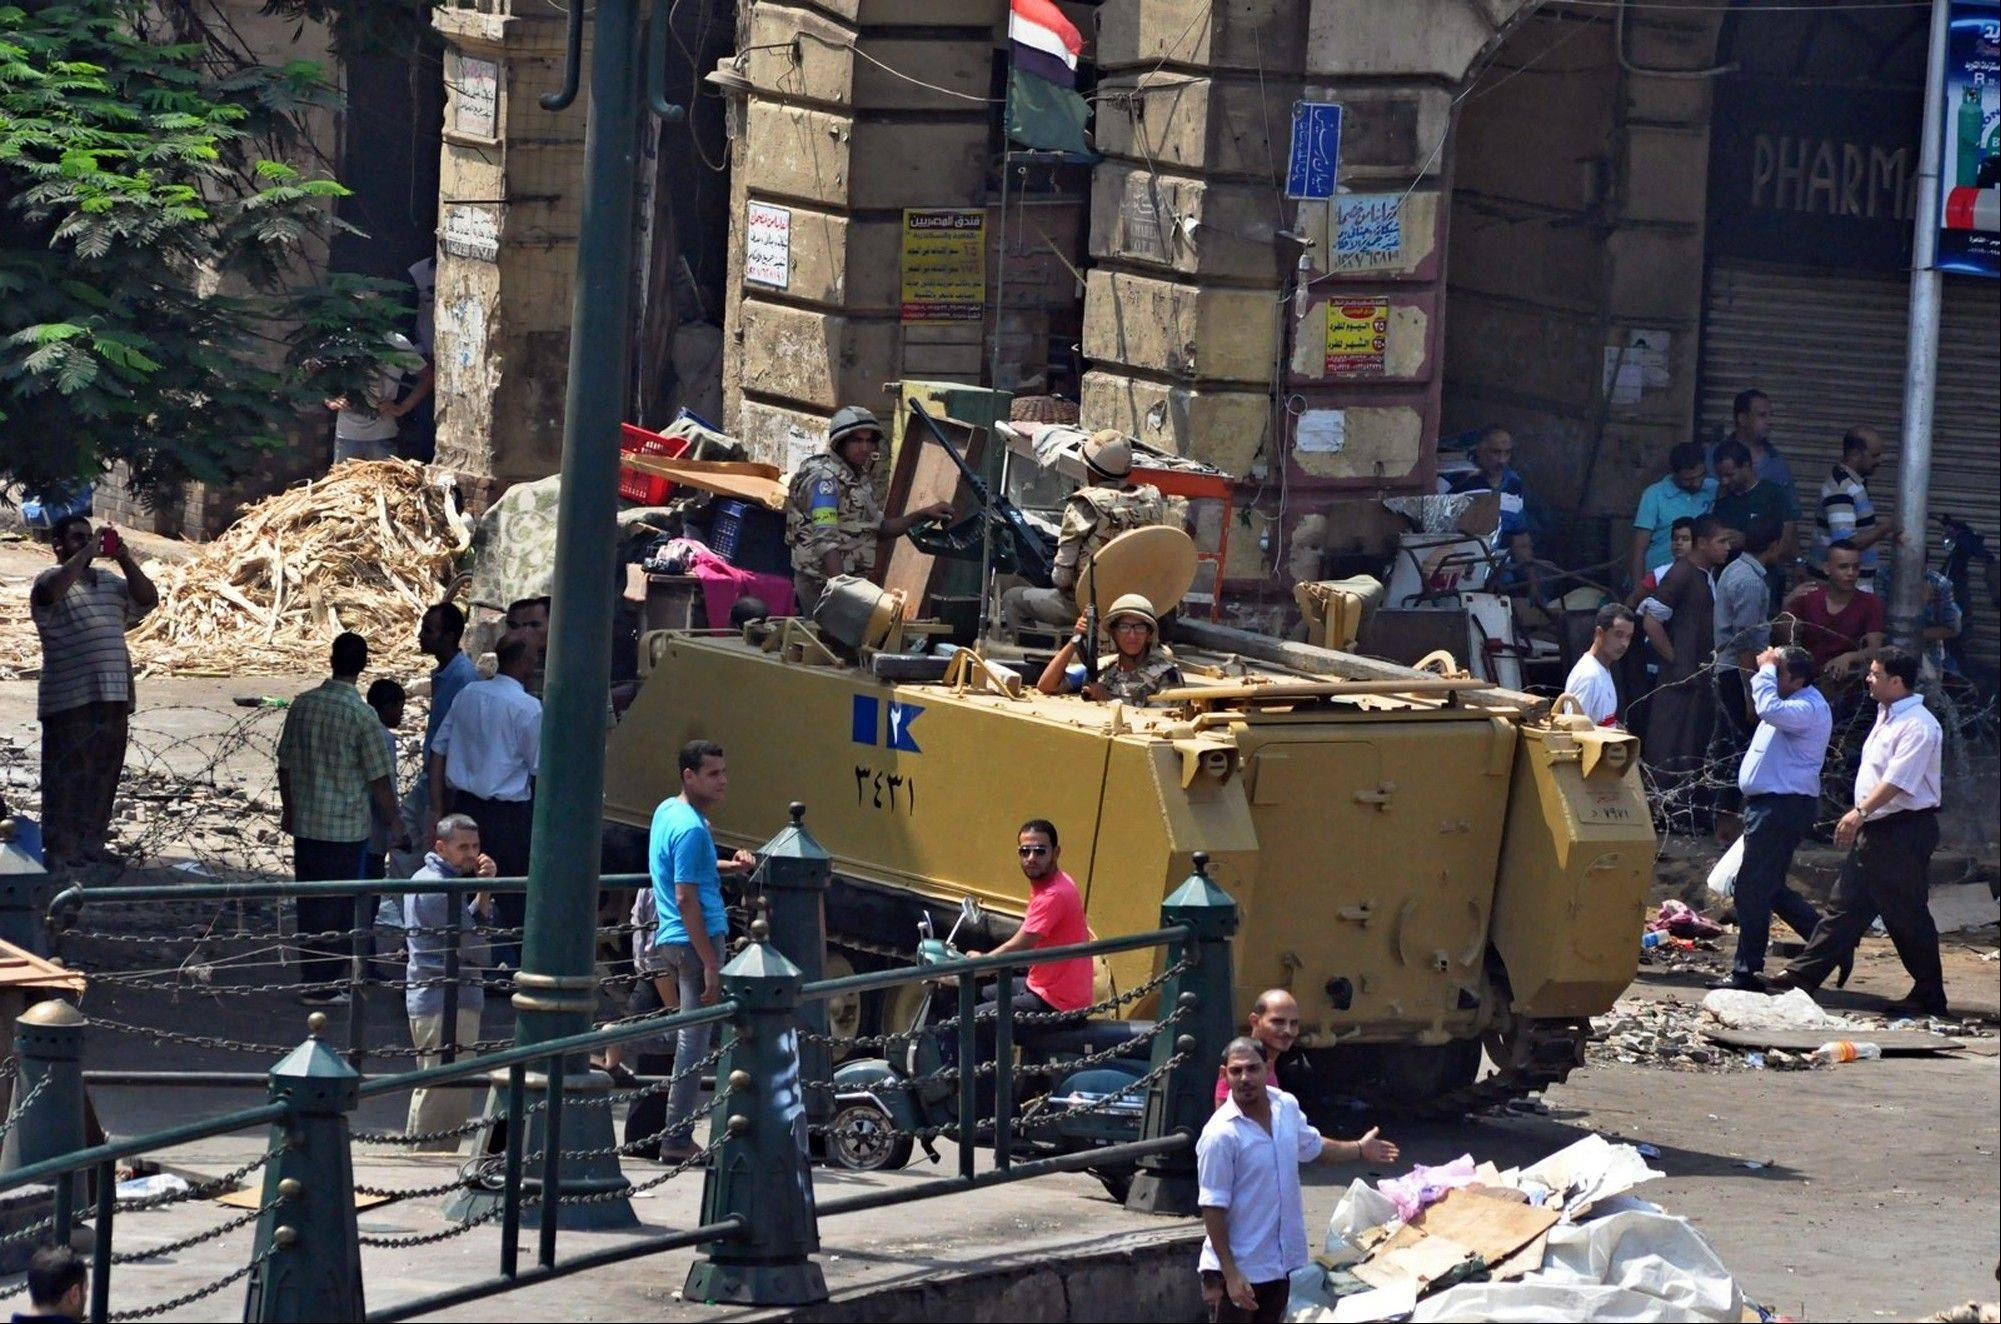 Associated Press Egyptians Army forces stand guard outside the al-Fatah mosque after hundreds of Islamist protesters barricaded themselves inside the mosque overnight, following a day of fierce street battles that left scores of people dead, near Ramses Square in downtown Cairo Saturday, Aug. 17. Authorities say police in Cairo are negotiating with people barricaded in a mosque and promising them safe passage if they leave. Muslim Brotherhood supporters of Egypt's ousted Islamist president are vowing to defy a state of emergency with new protests today, adding to the tension.